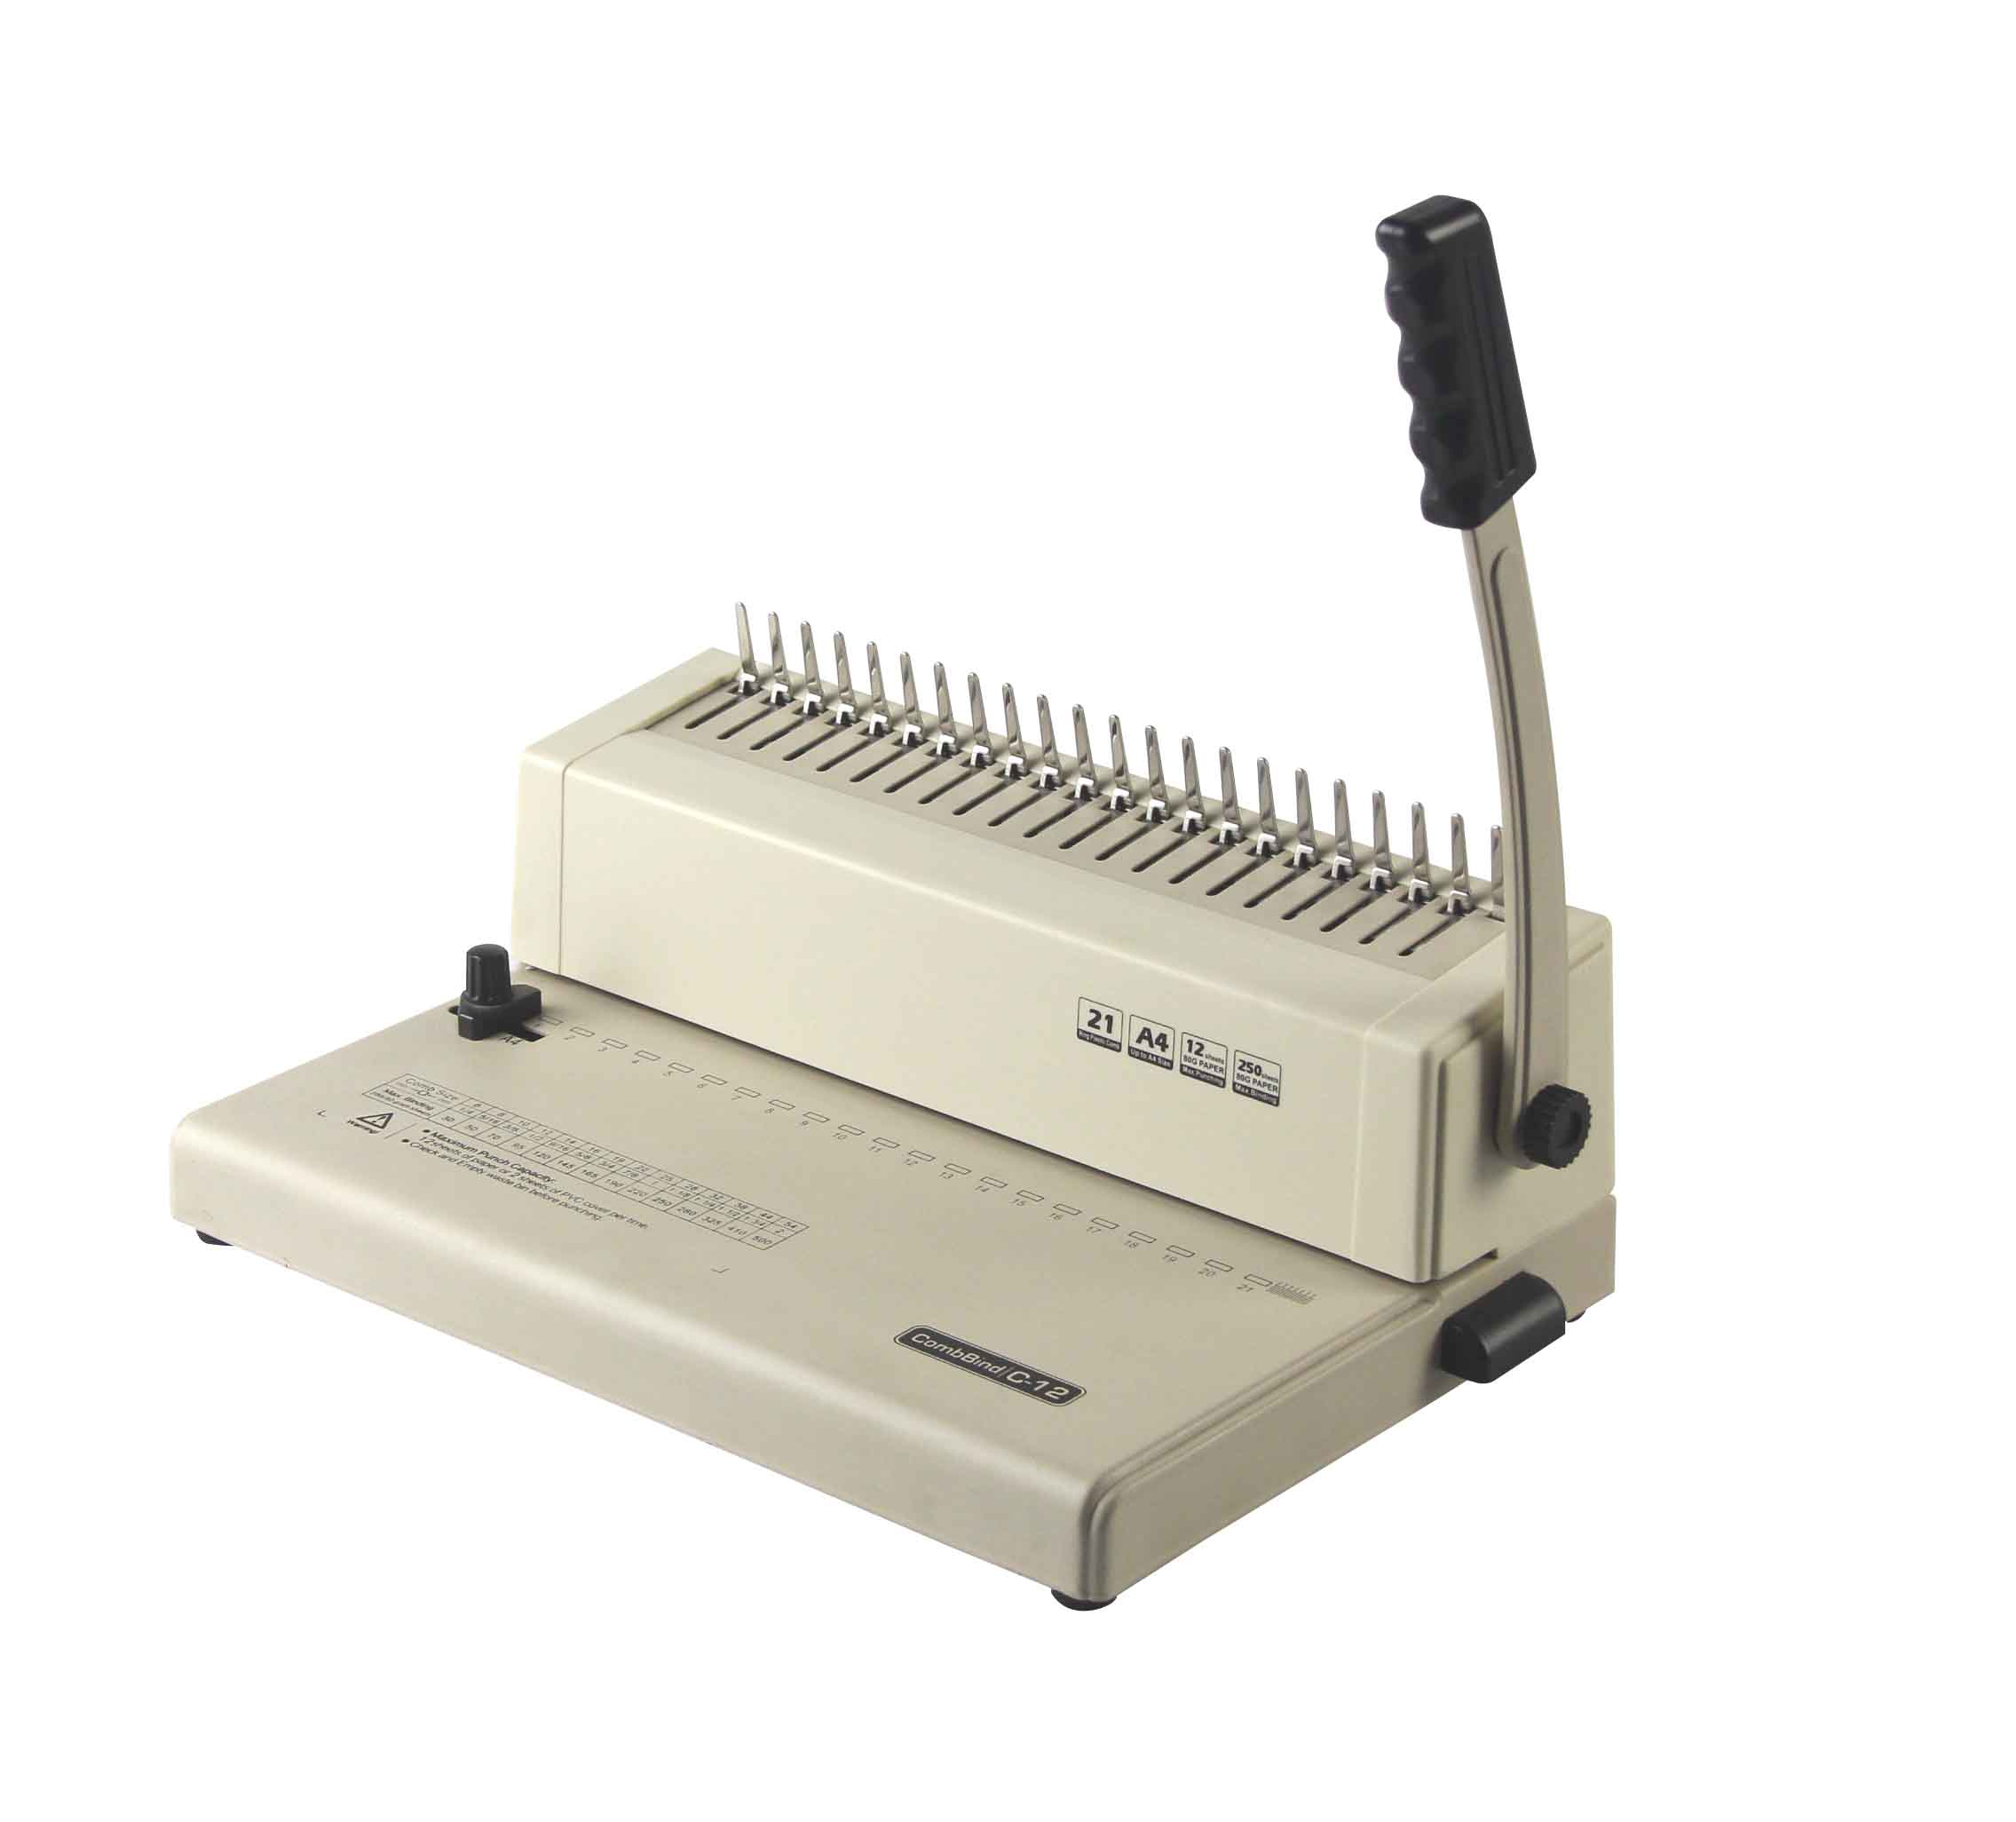 SONTO cheapest price Mini size manual Comb Binding Machine <strong>C12</strong> for home and school use